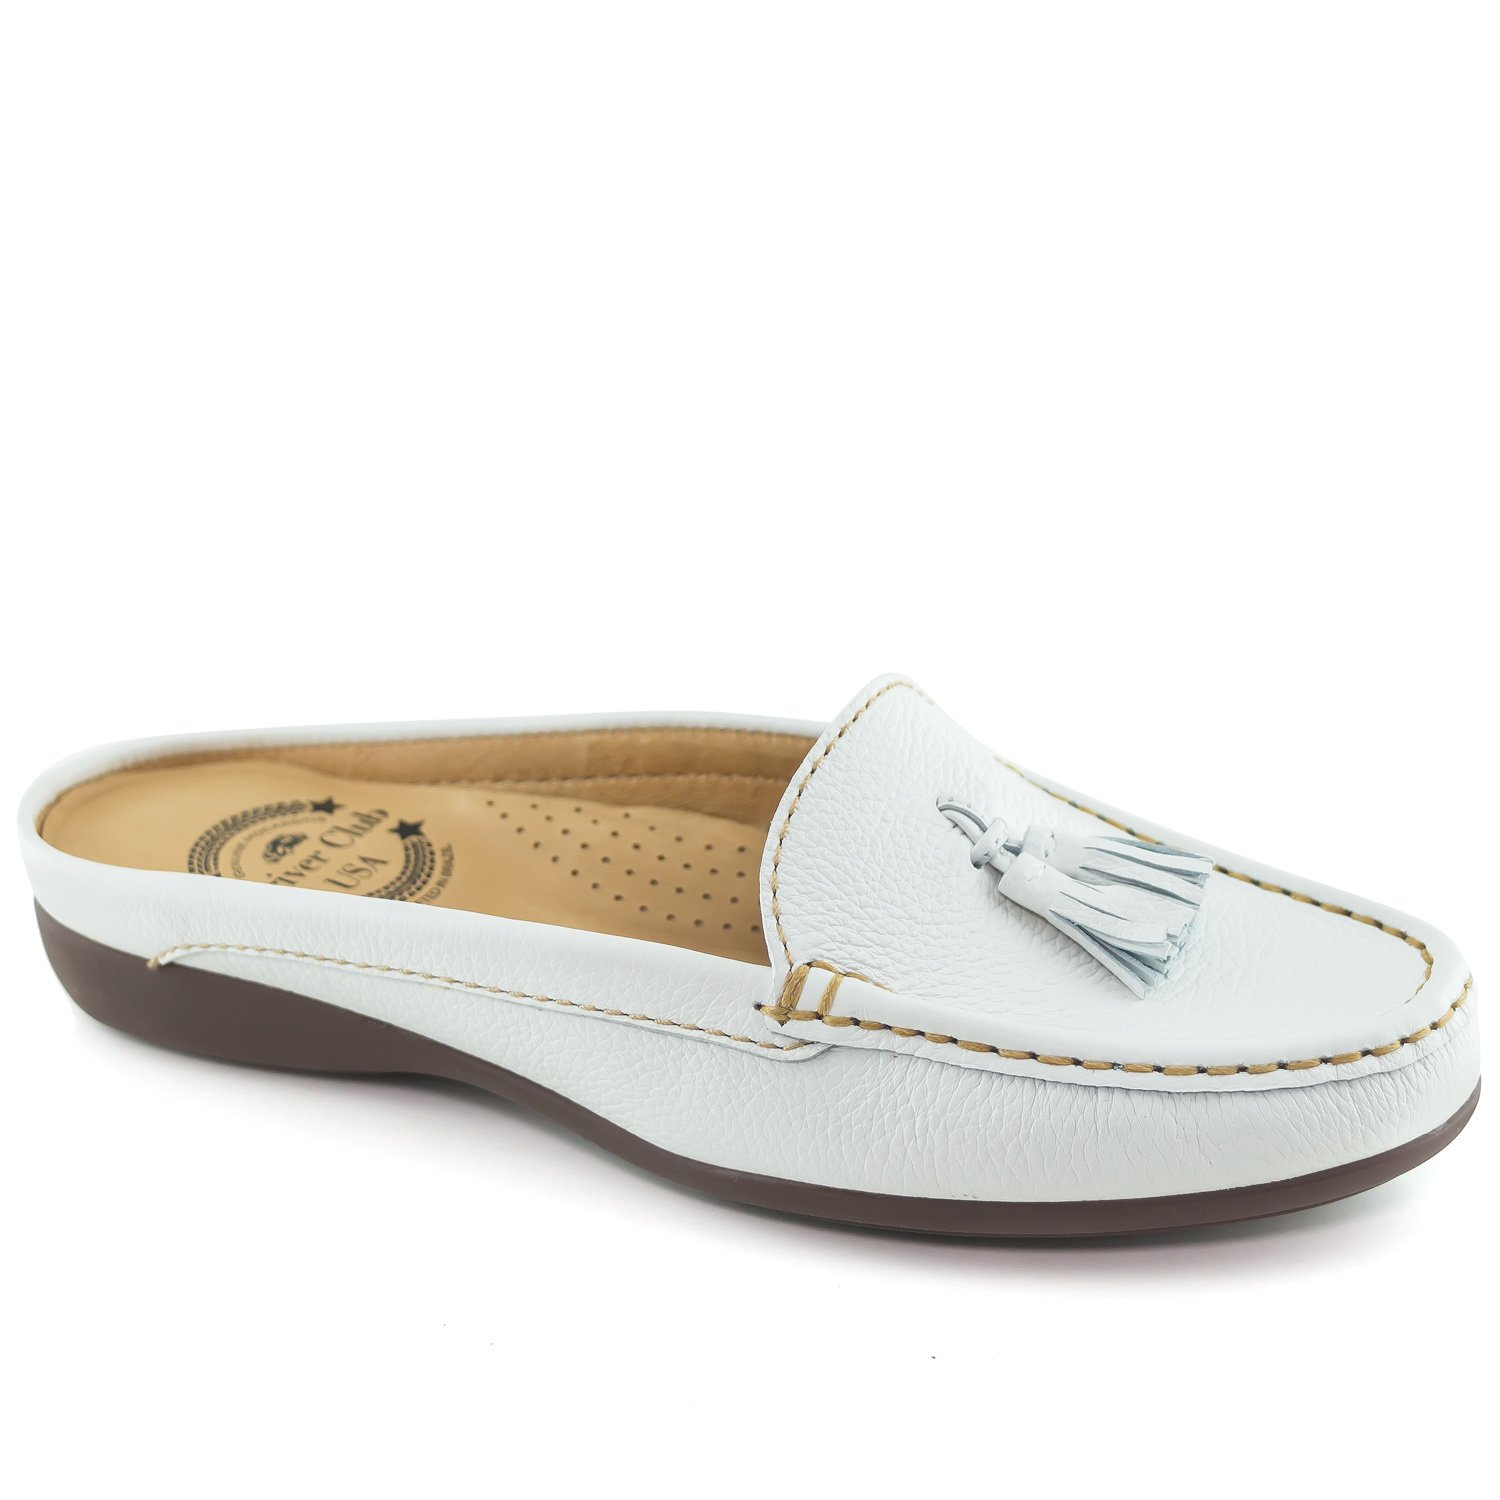 Driver Club USA Women's Austin Mule White Grainy Slip On 9